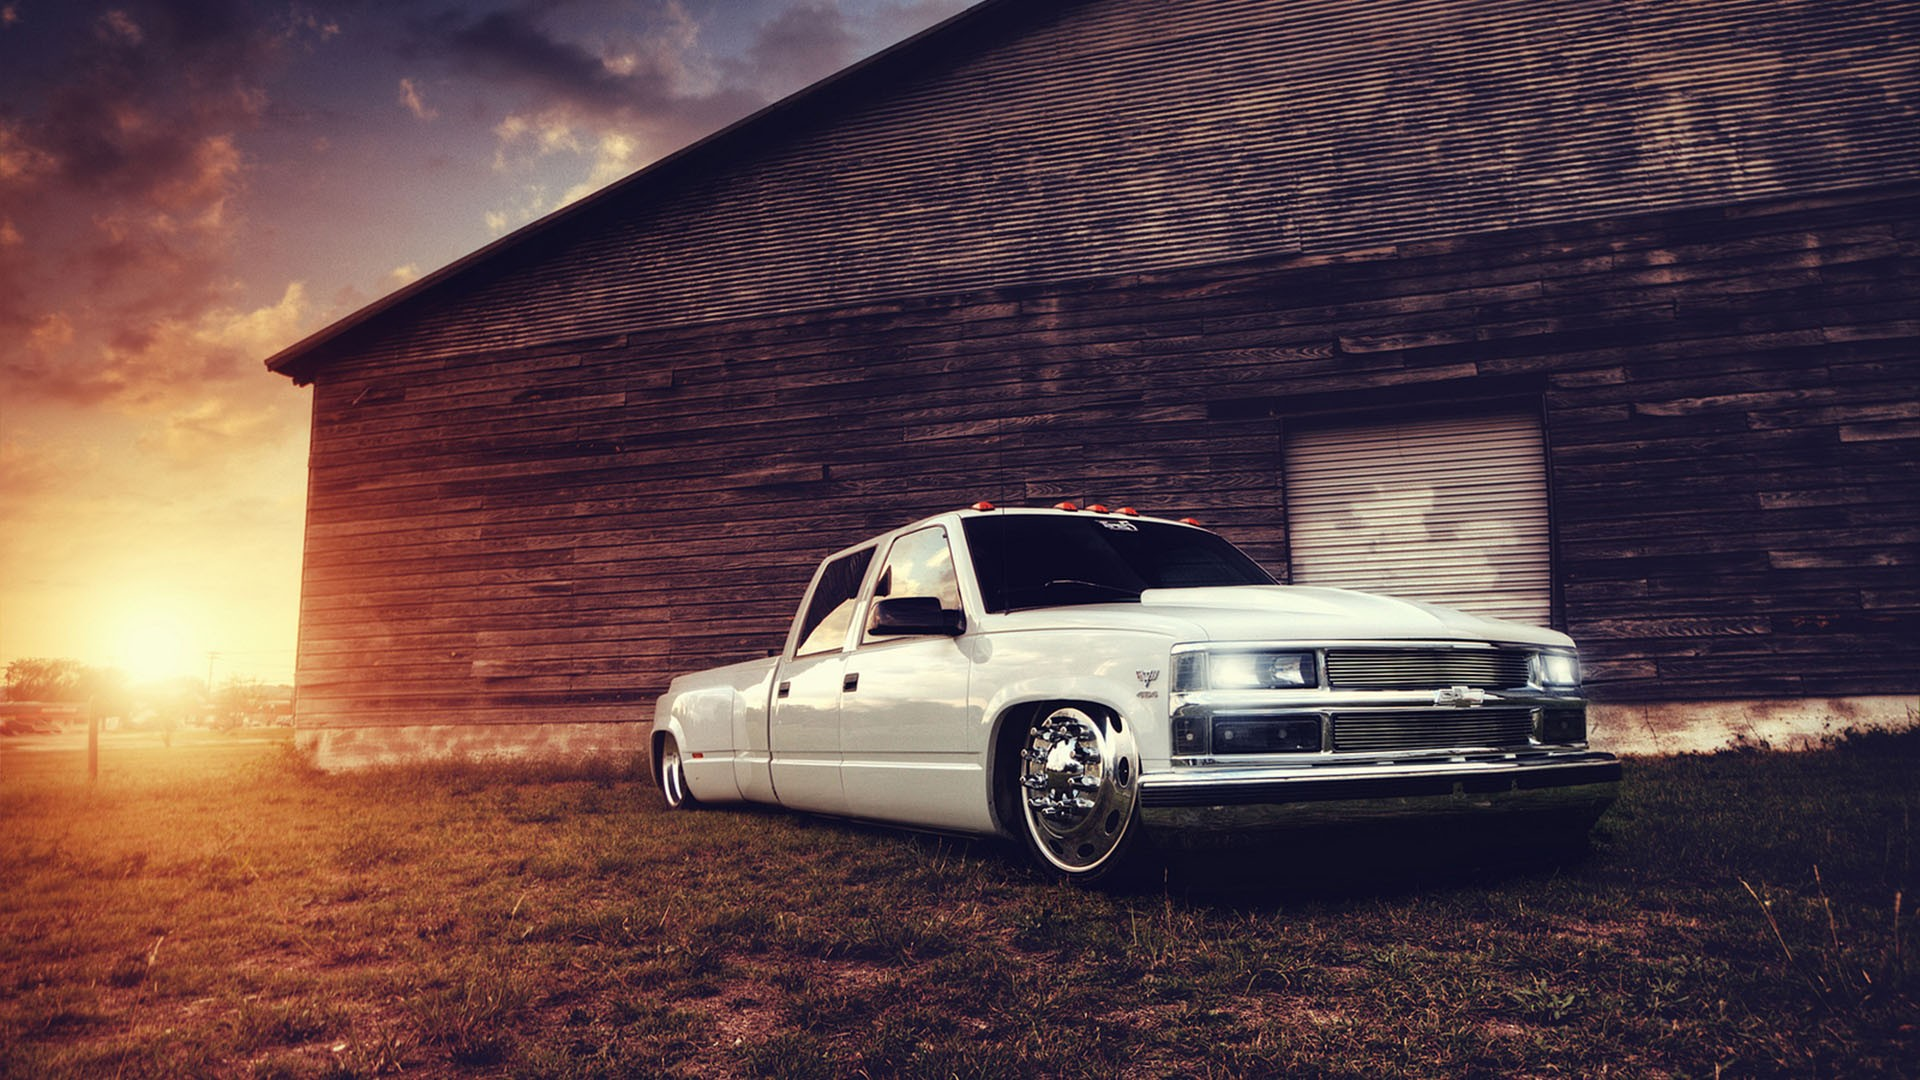 chevy truck full hd wallpaper and background image | 1920x1080 | id